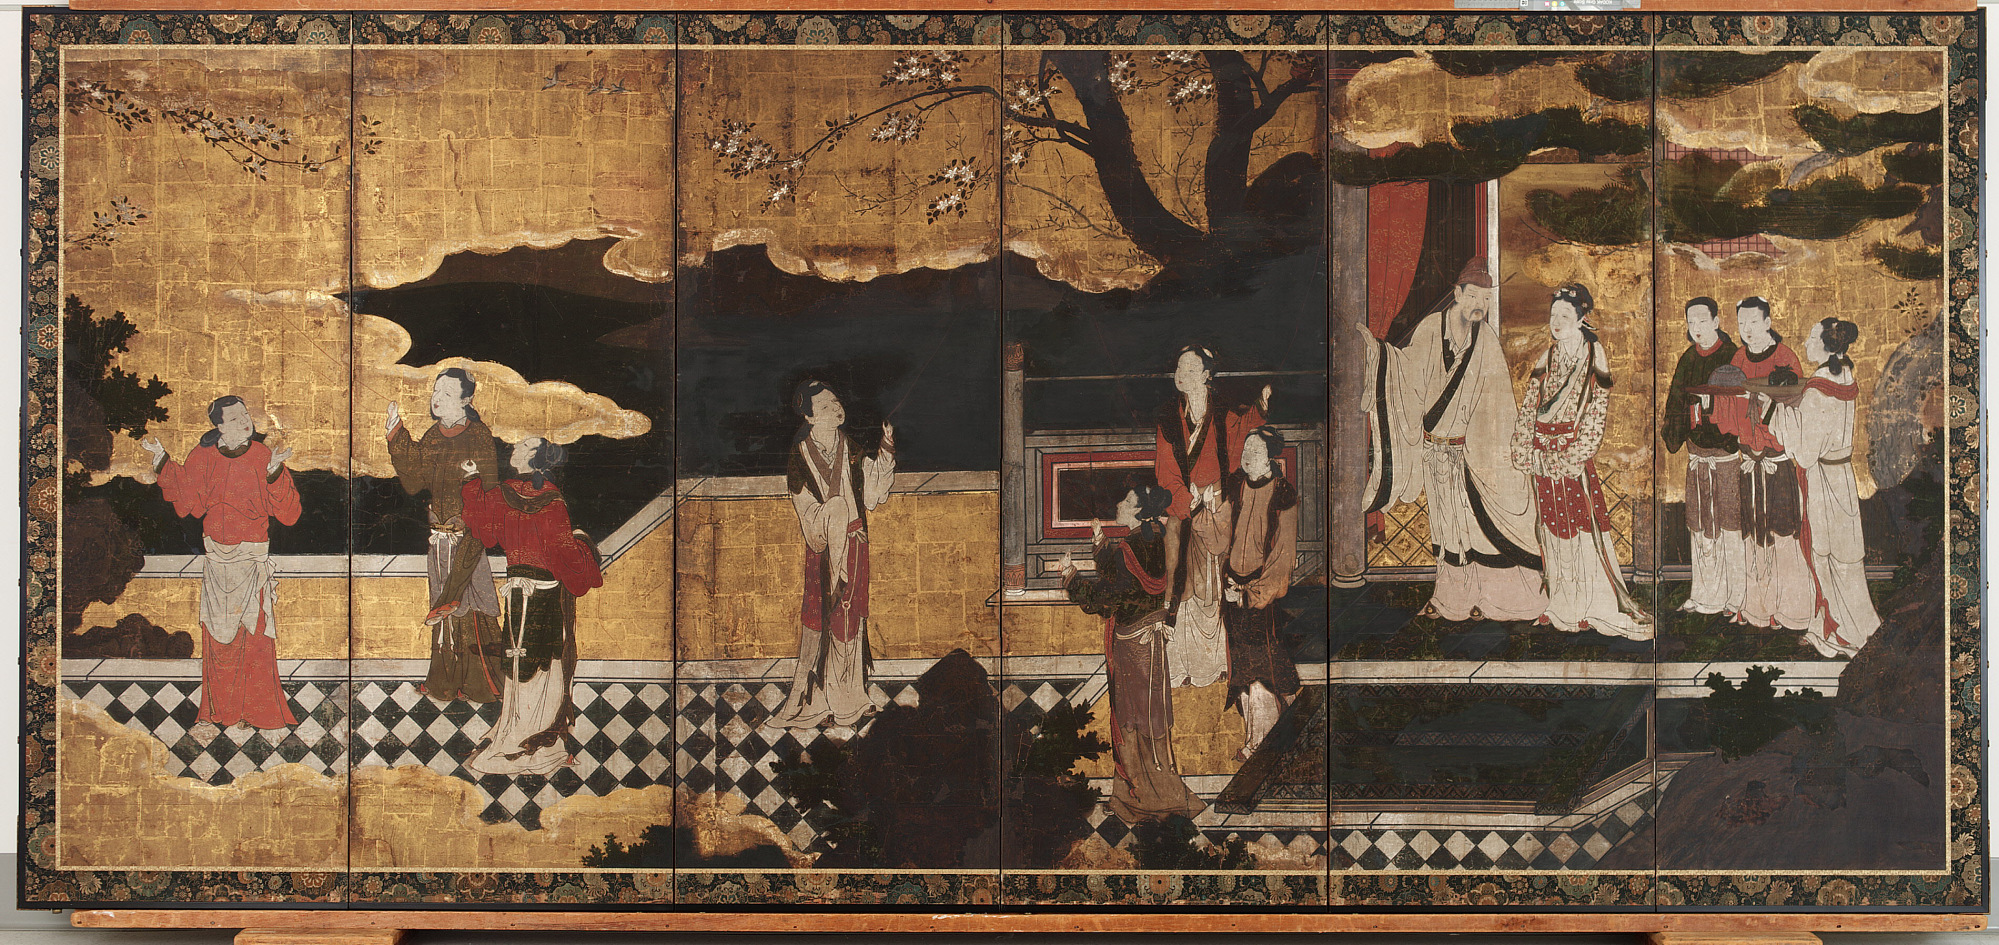 : The Chinese Emperor Minghuang and his concubine Yang Guifei, with attendants on a terrace